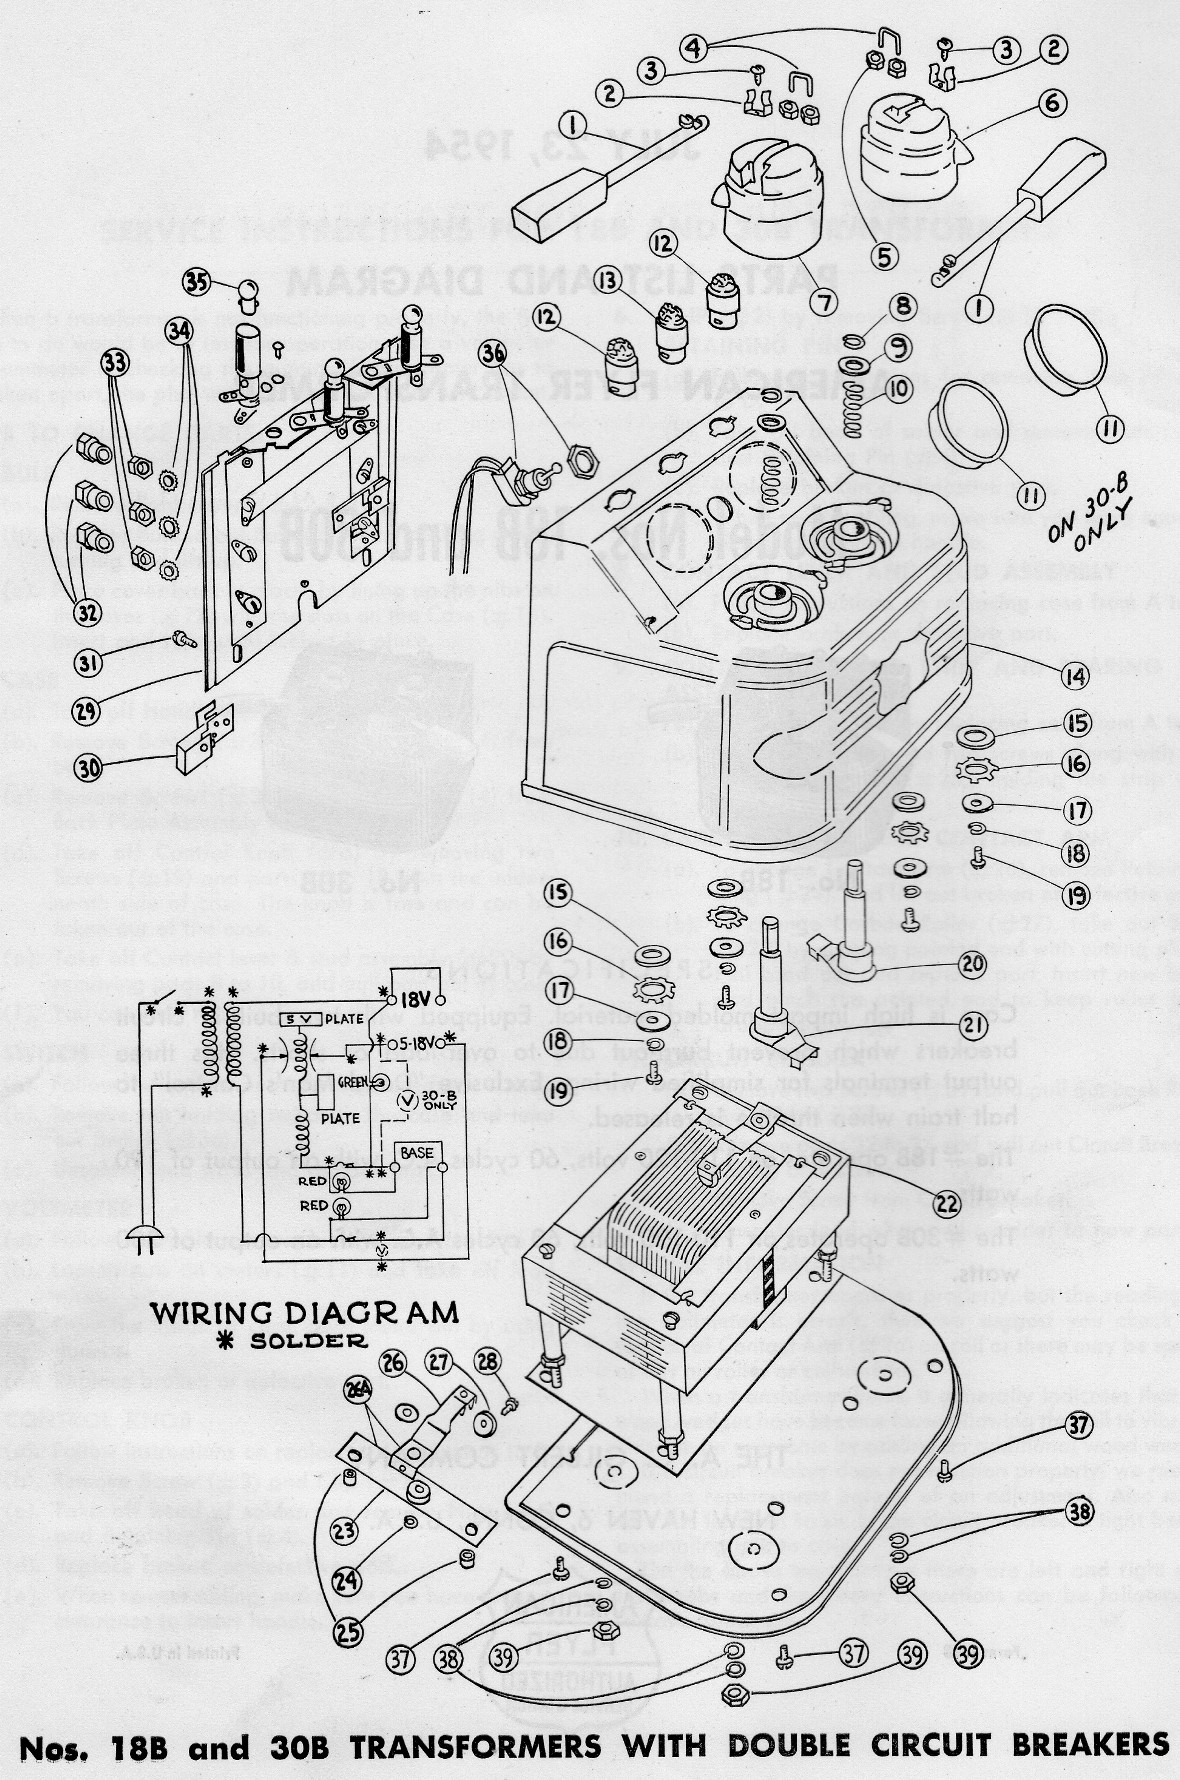 American Flyer Transformer 18b Amp 30b Parts List And Diagram